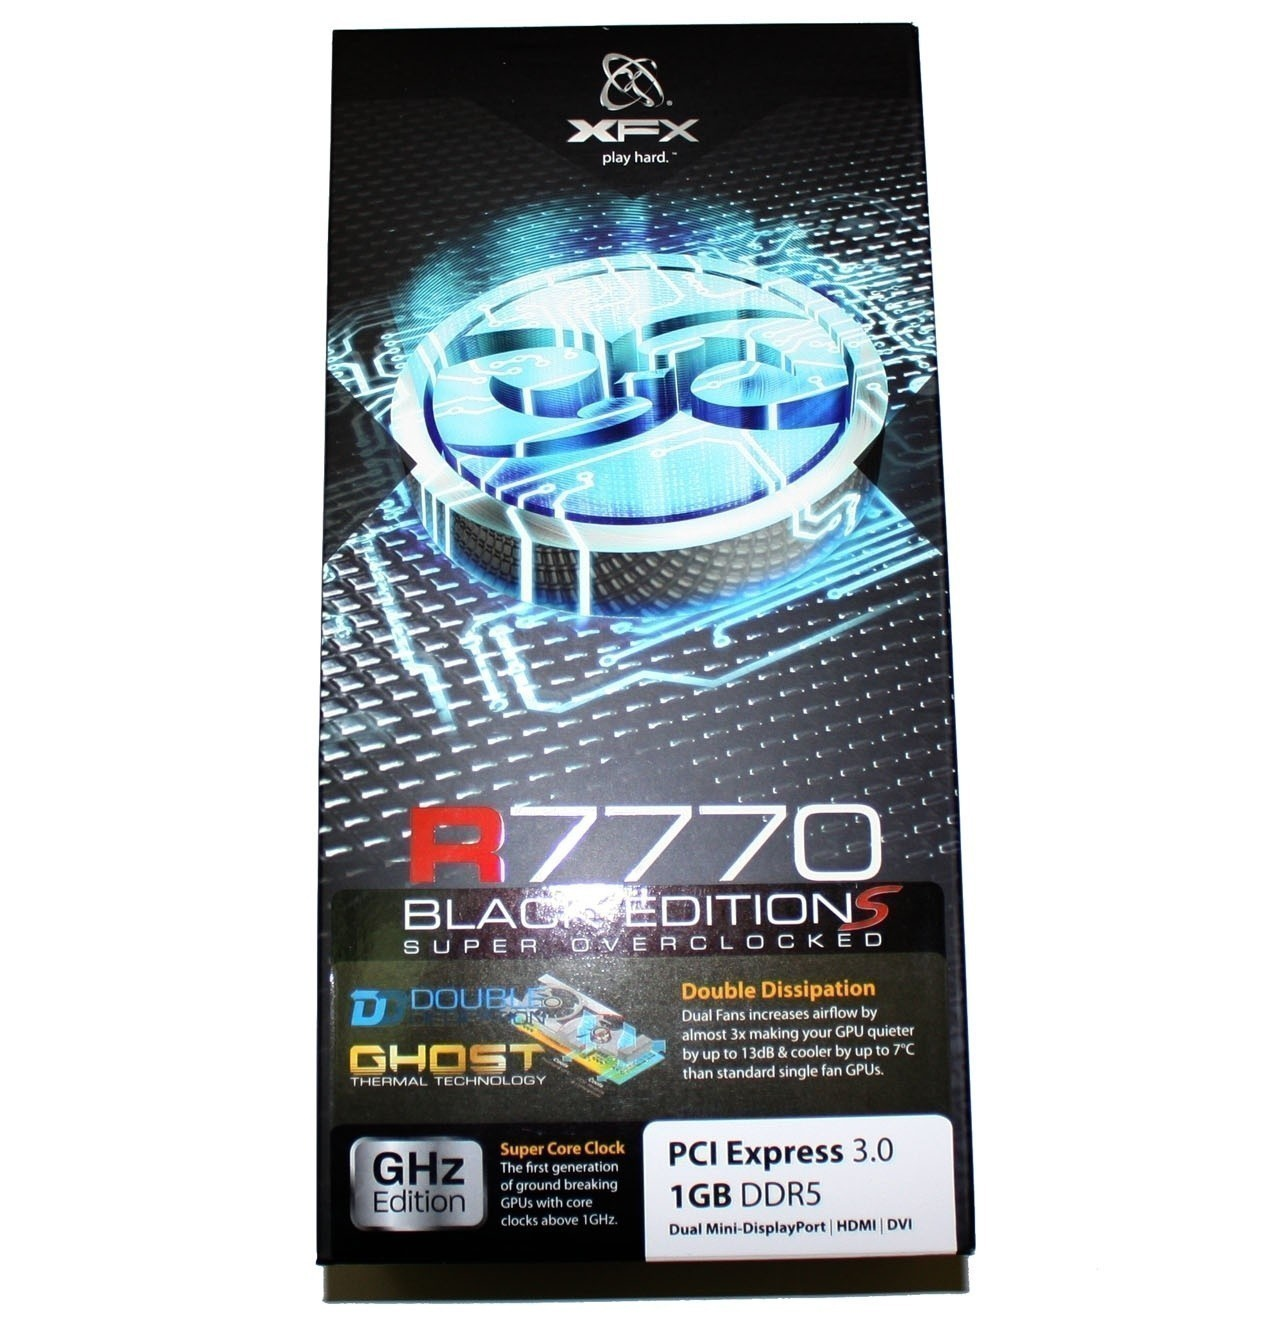 xfx_radeon_hd_7770_black_edition_s_super_overclocked_1gb_video_card_review